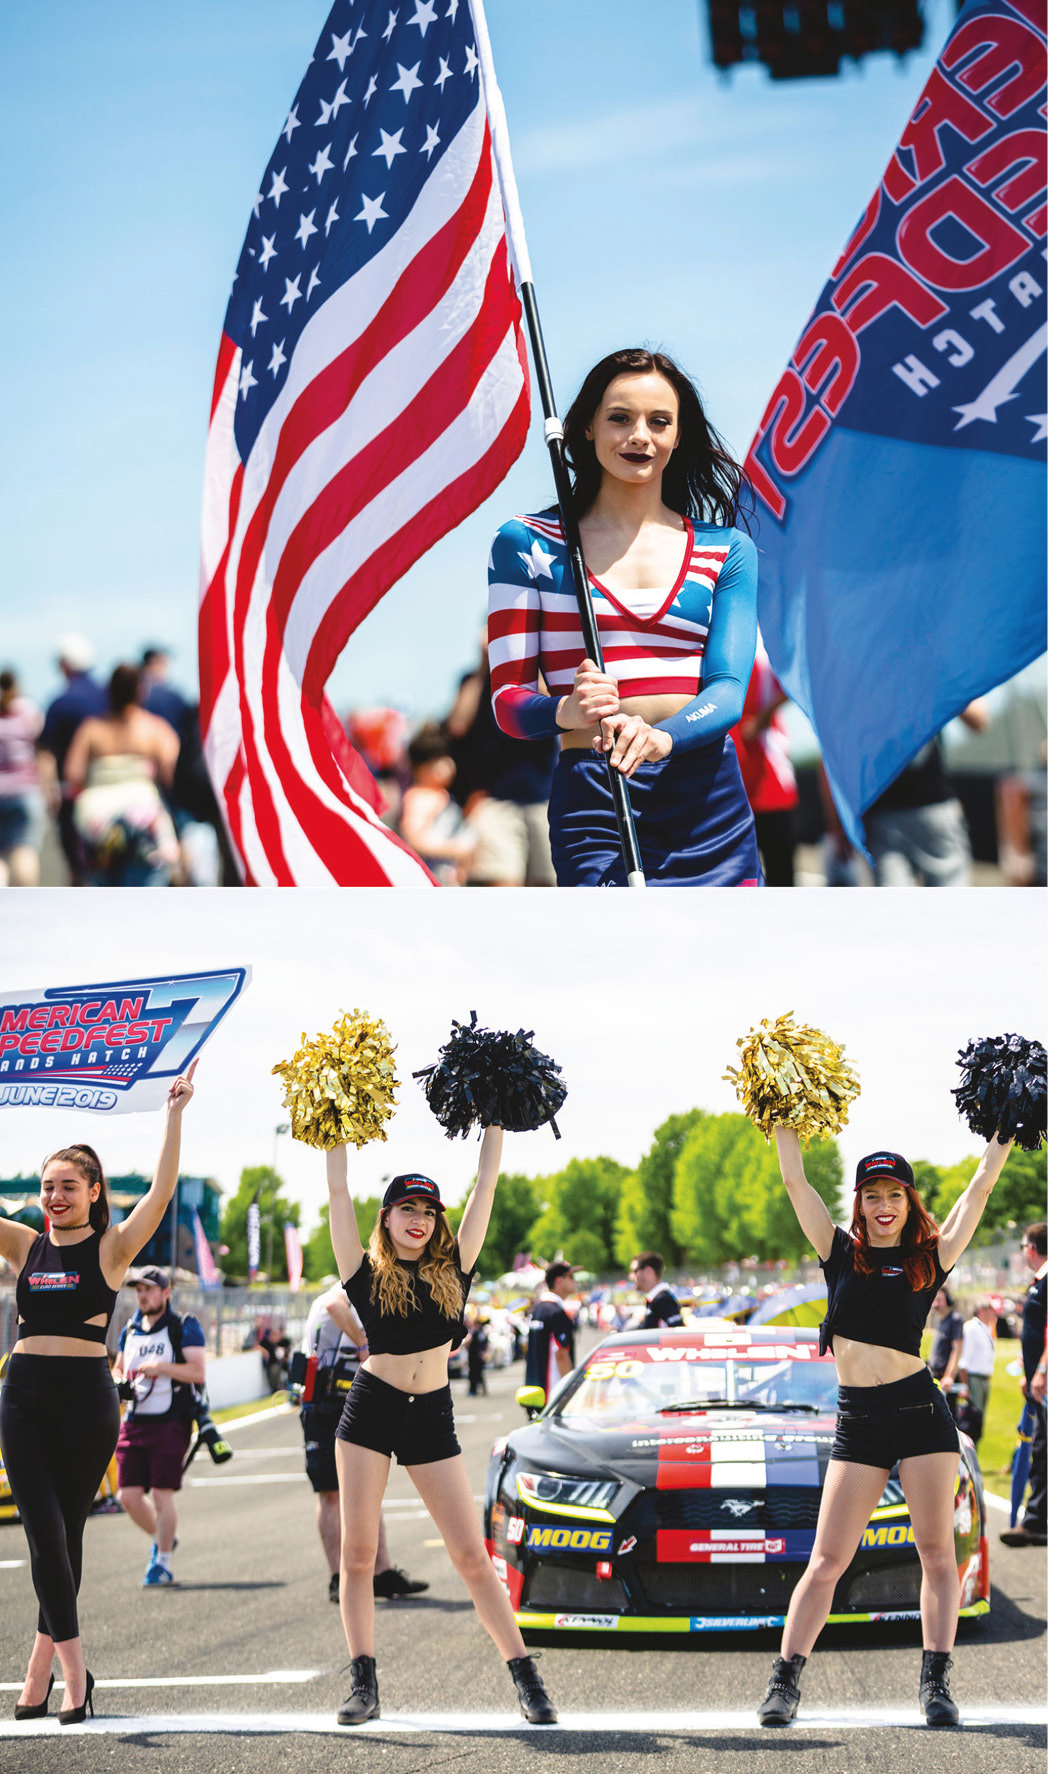 Razzmatazz and public interaction are key elements of the NASCAR Euro Series